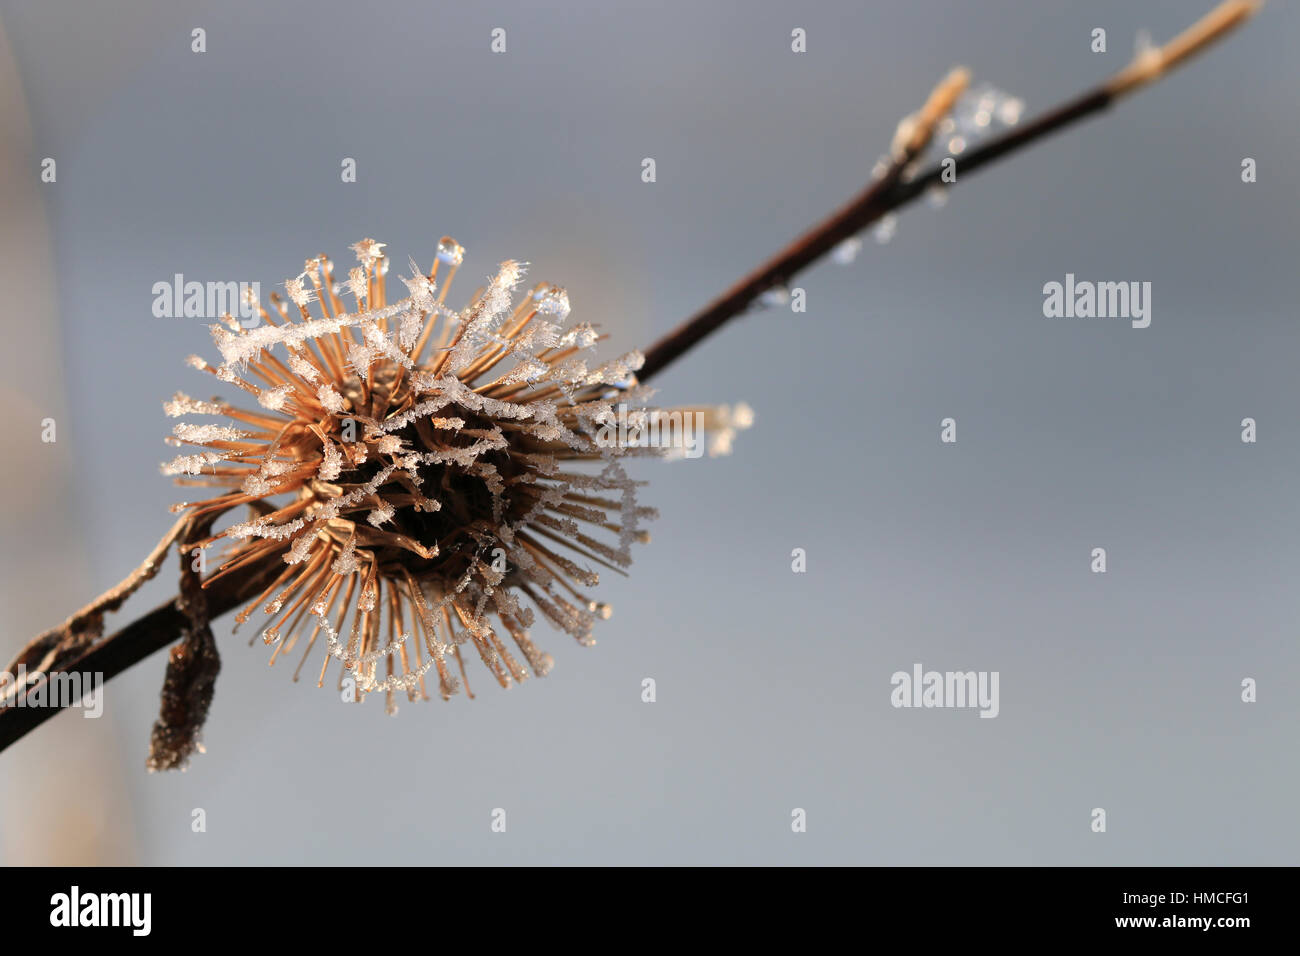 Frosted, prickly burr, seedhead of the burdock plant in wintertime - Stock Image